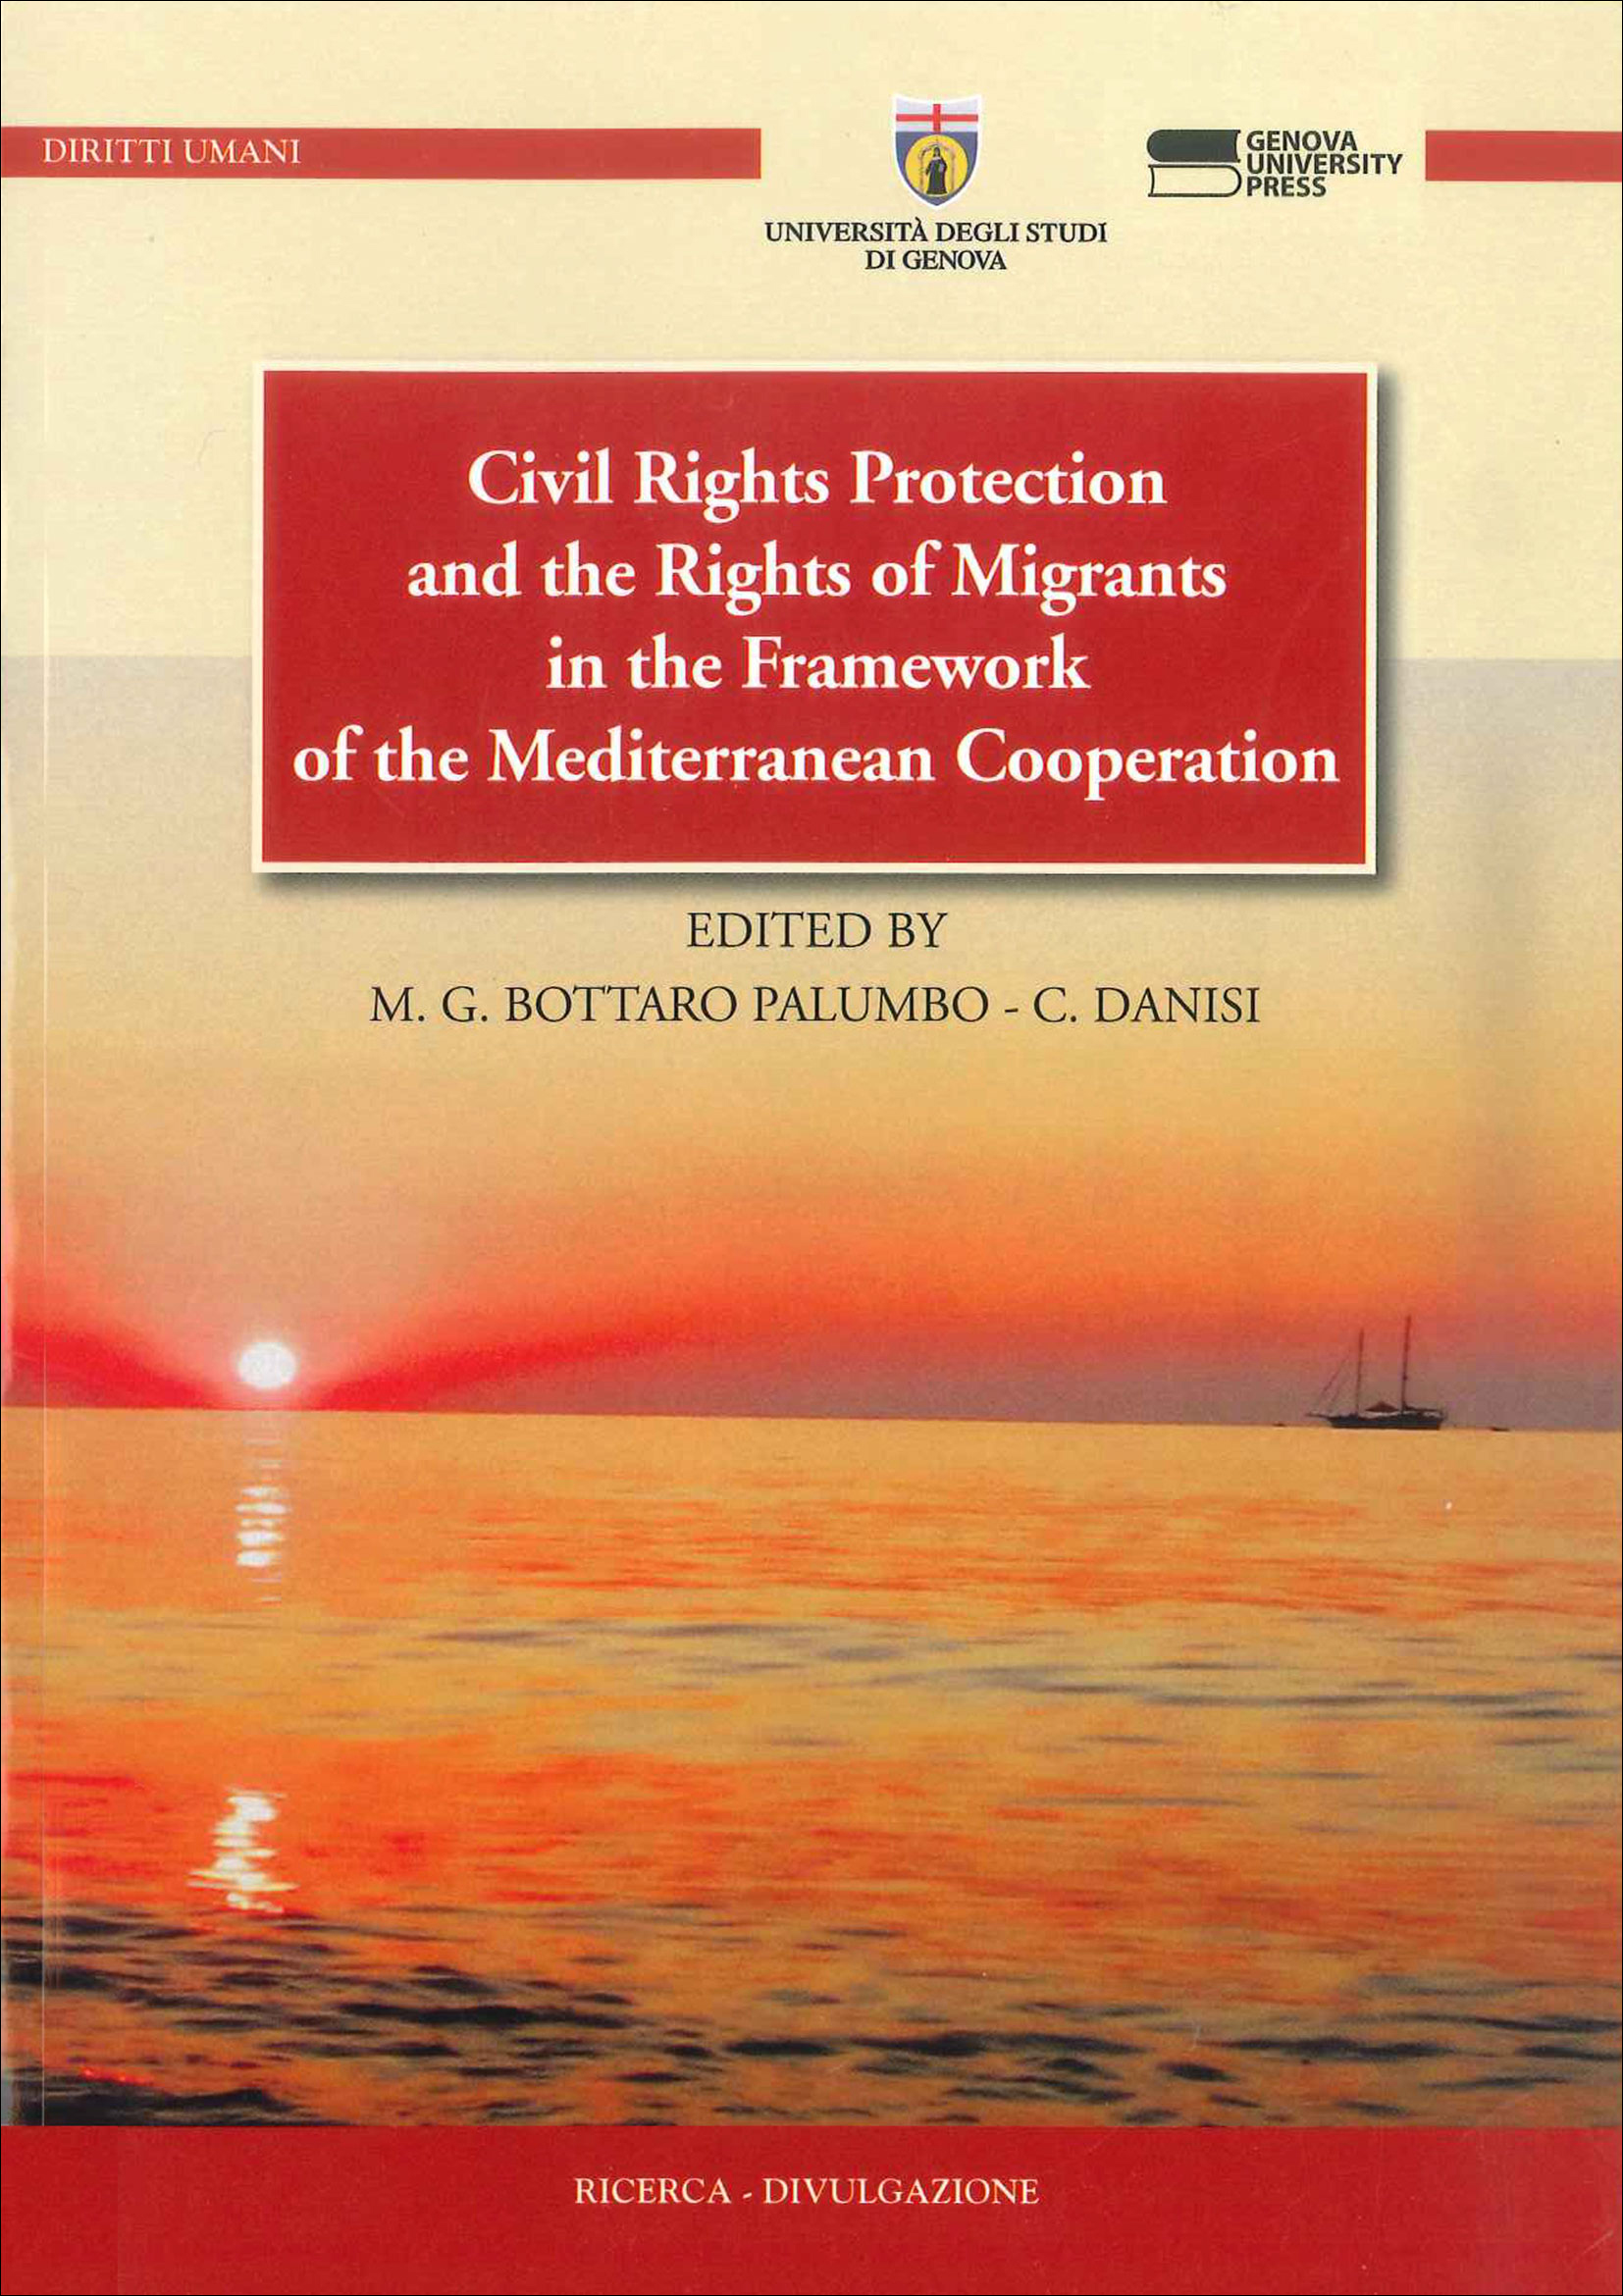 Civil Rights Protection and the Rights of Migrants in the Framework of the Mediterranean Cooperation